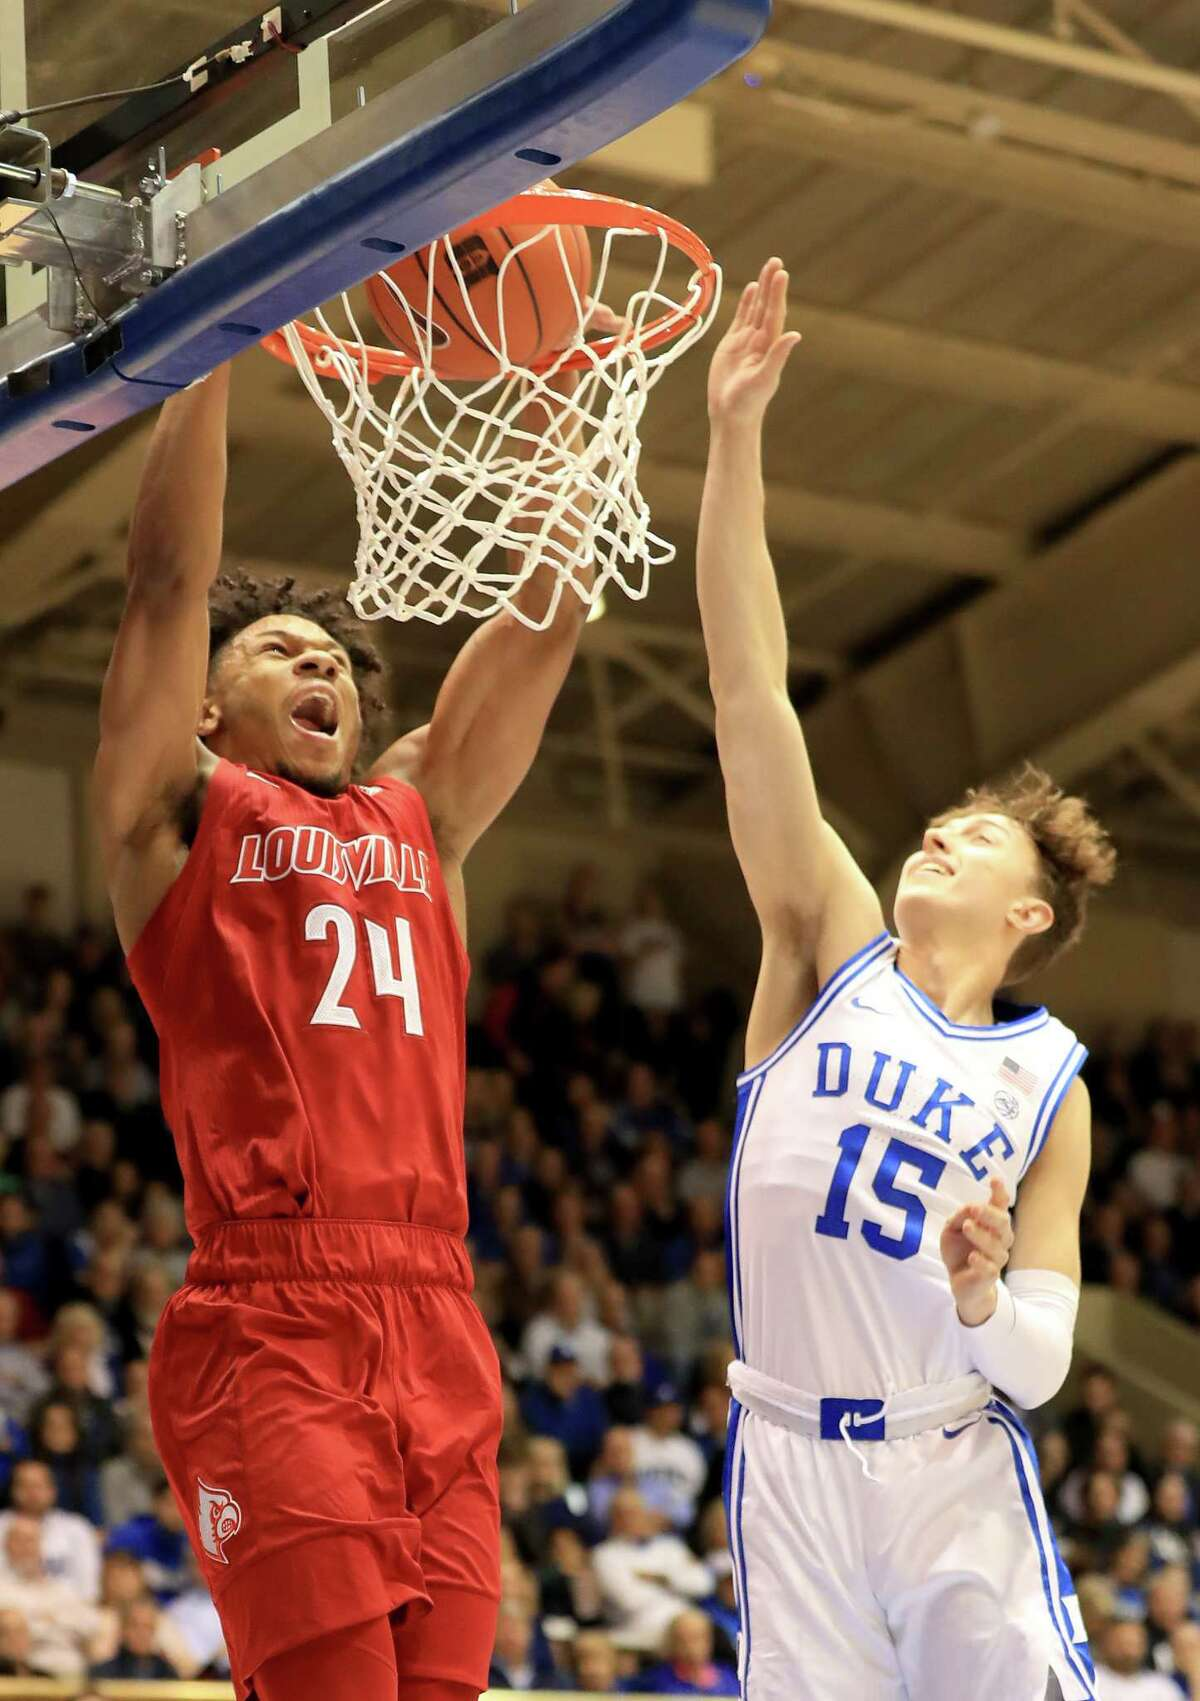 DURHAM, NORTH CAROLINA - JANUARY 18: Dwayne Sutton #24 of the Louisville Cardinals dunks the ball against Alex O'Connell #15 of the Duke Blue Devils during their game at Cameron Indoor Stadium on January 18, 2020 in Durham, North Carolina. (Photo by Streeter Lecka/Getty Images)